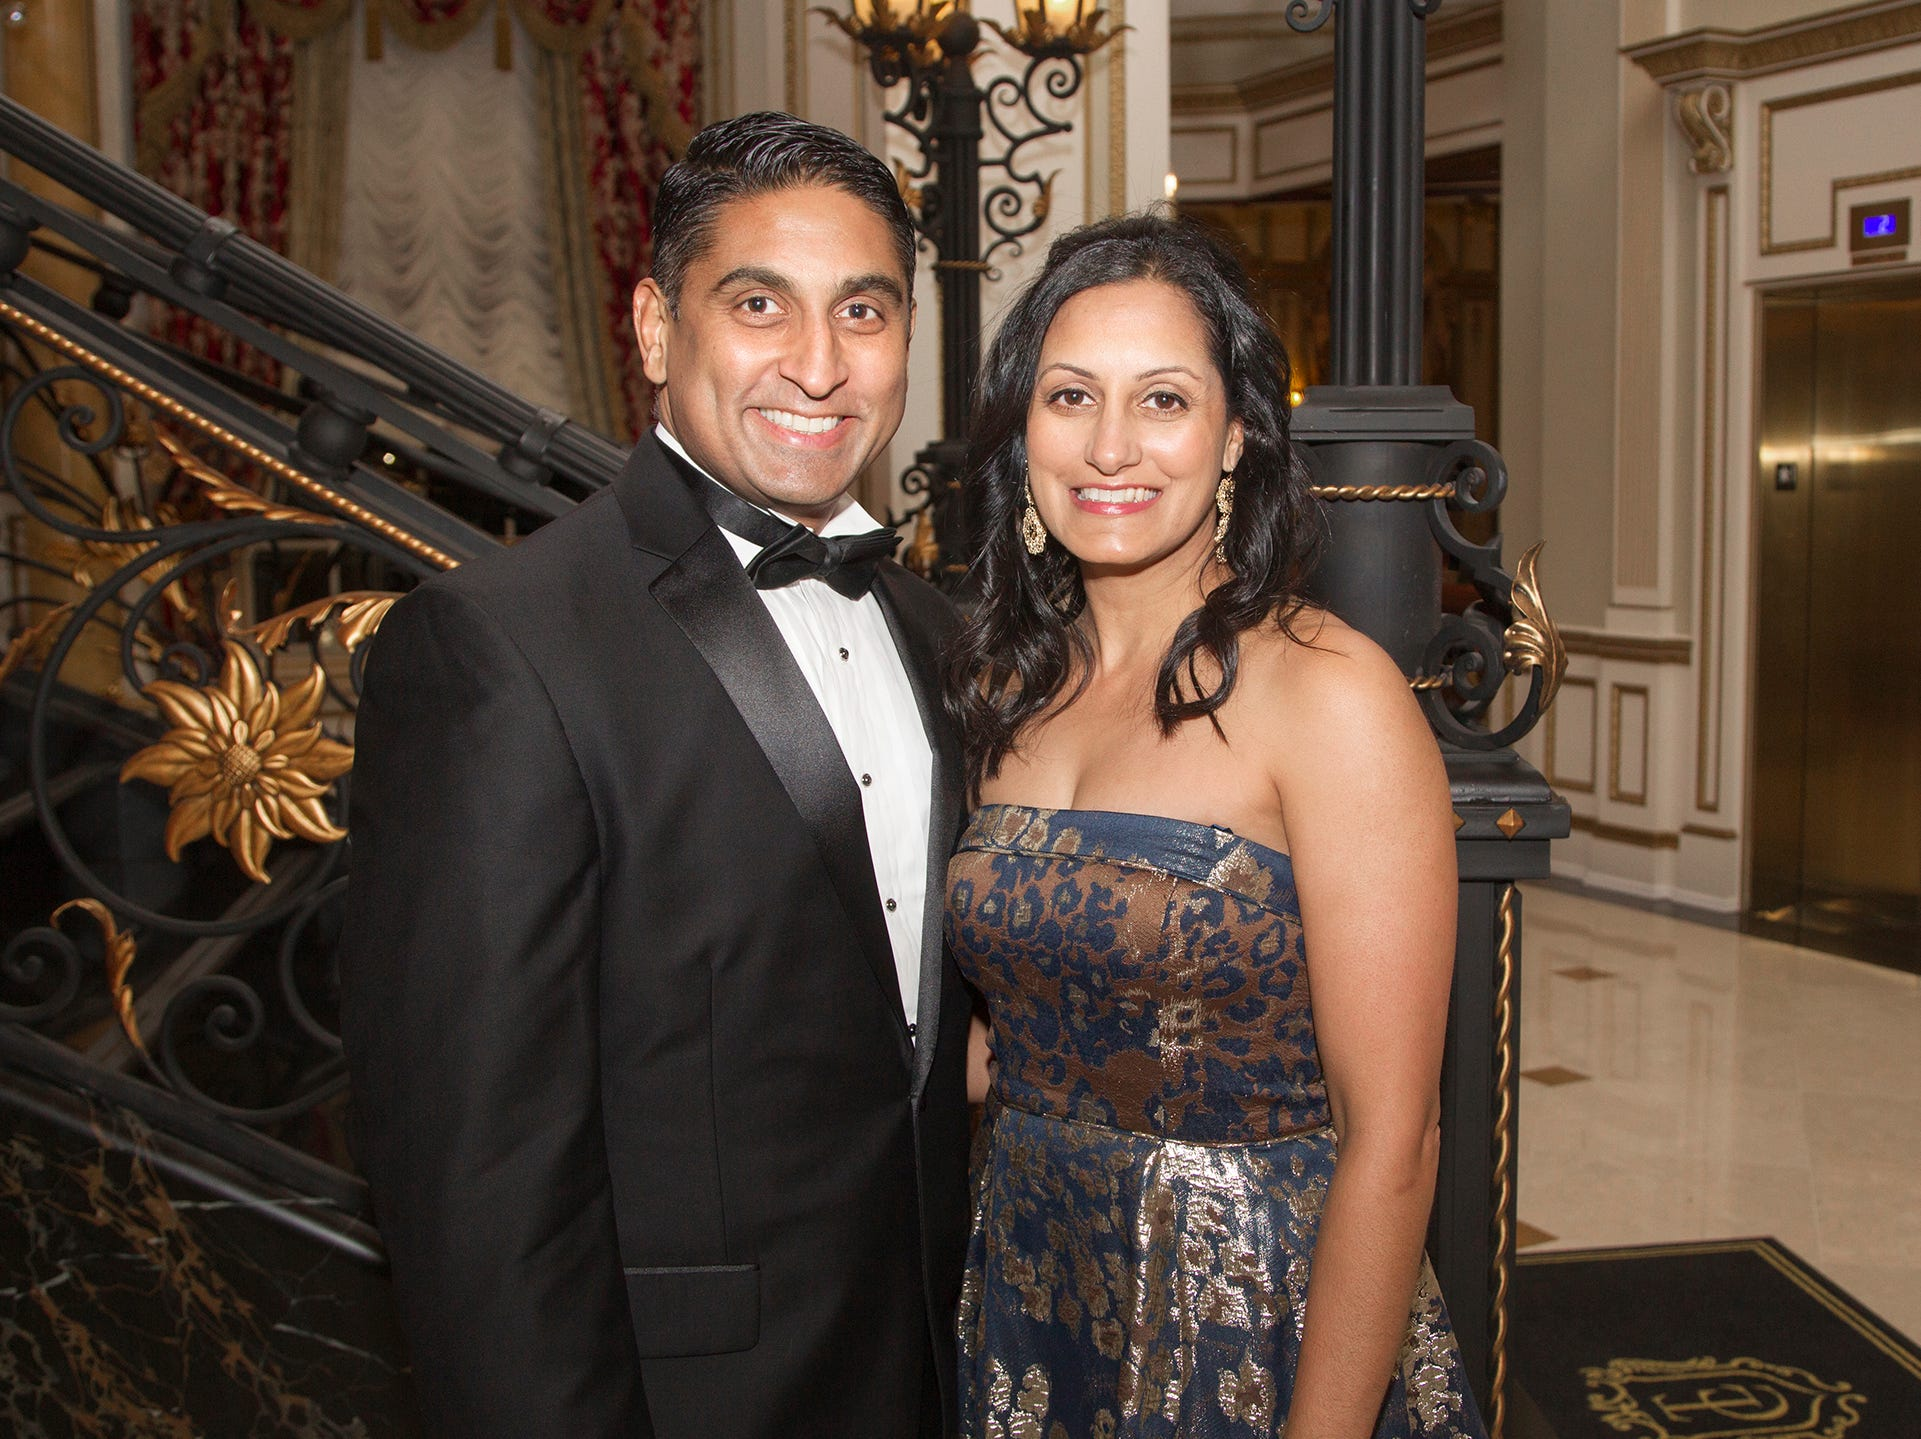 Karteck and Meera Bhavsar. The 72nd Annual Valley Ball gala at The Legacy Castle in Pompton Plains. 11/16/2018